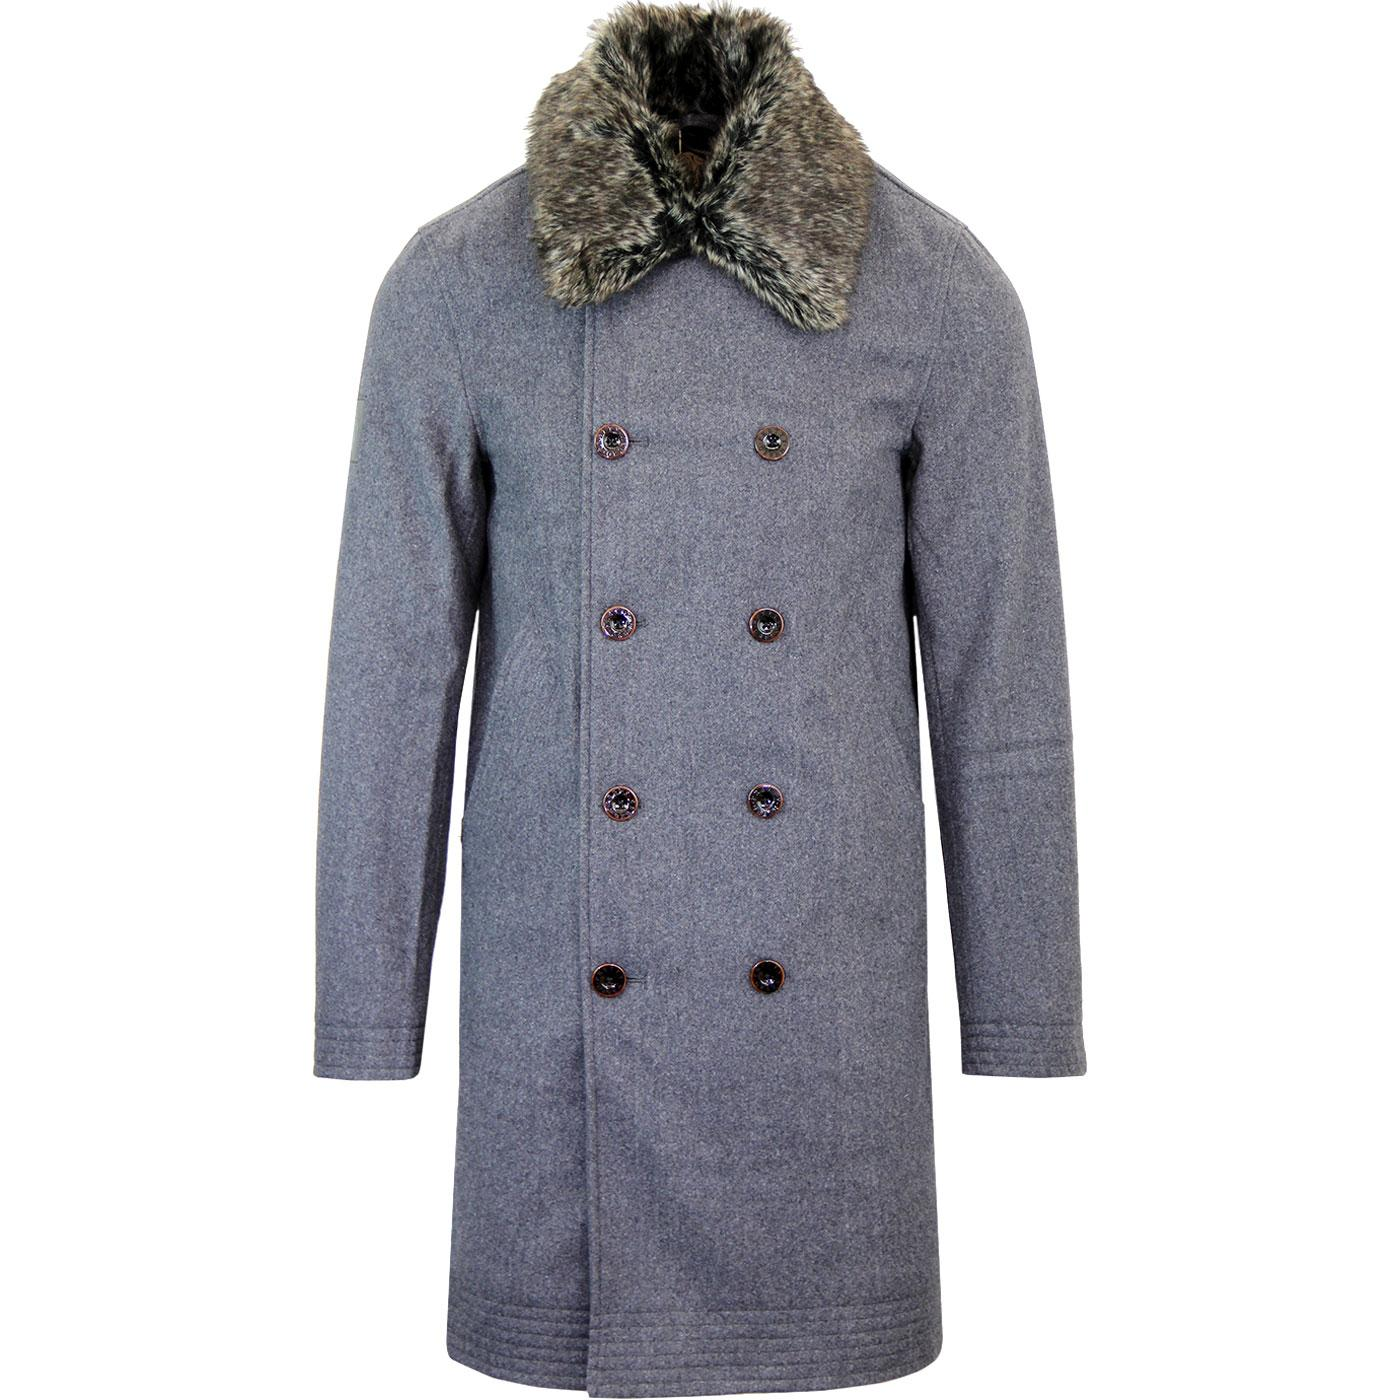 PRETTY GREEN Retro Wool Military Trench Coat GREY